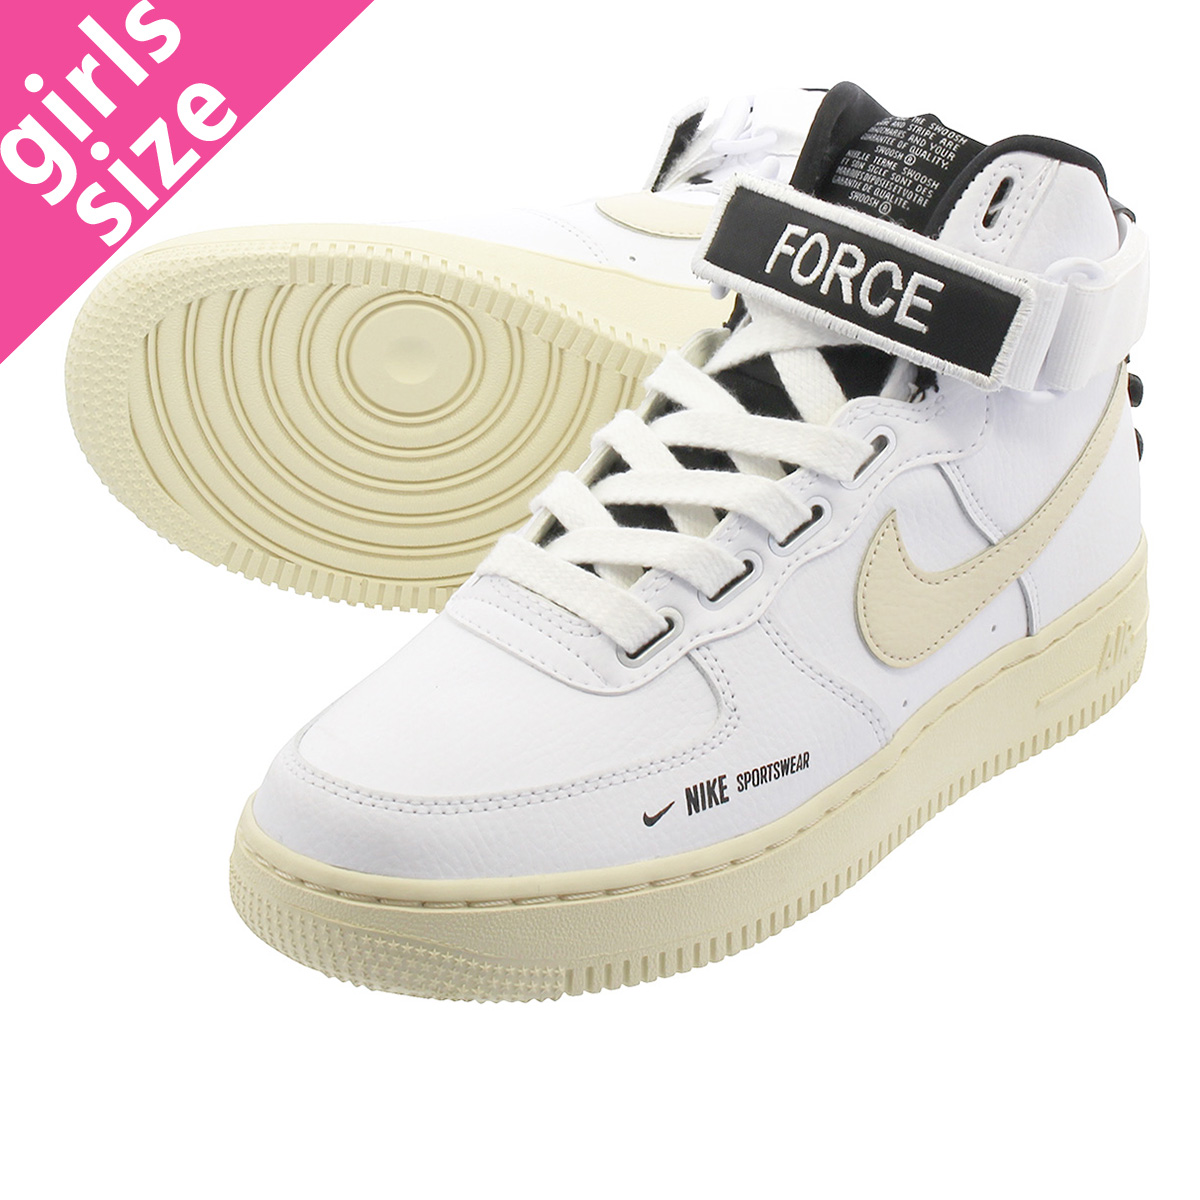 NIKE WMNS AIR FORCE 1 HI UTILITY Nike women air force 1 high utility WHITELIGHT CREAMBLACKWHITE aj7311 100